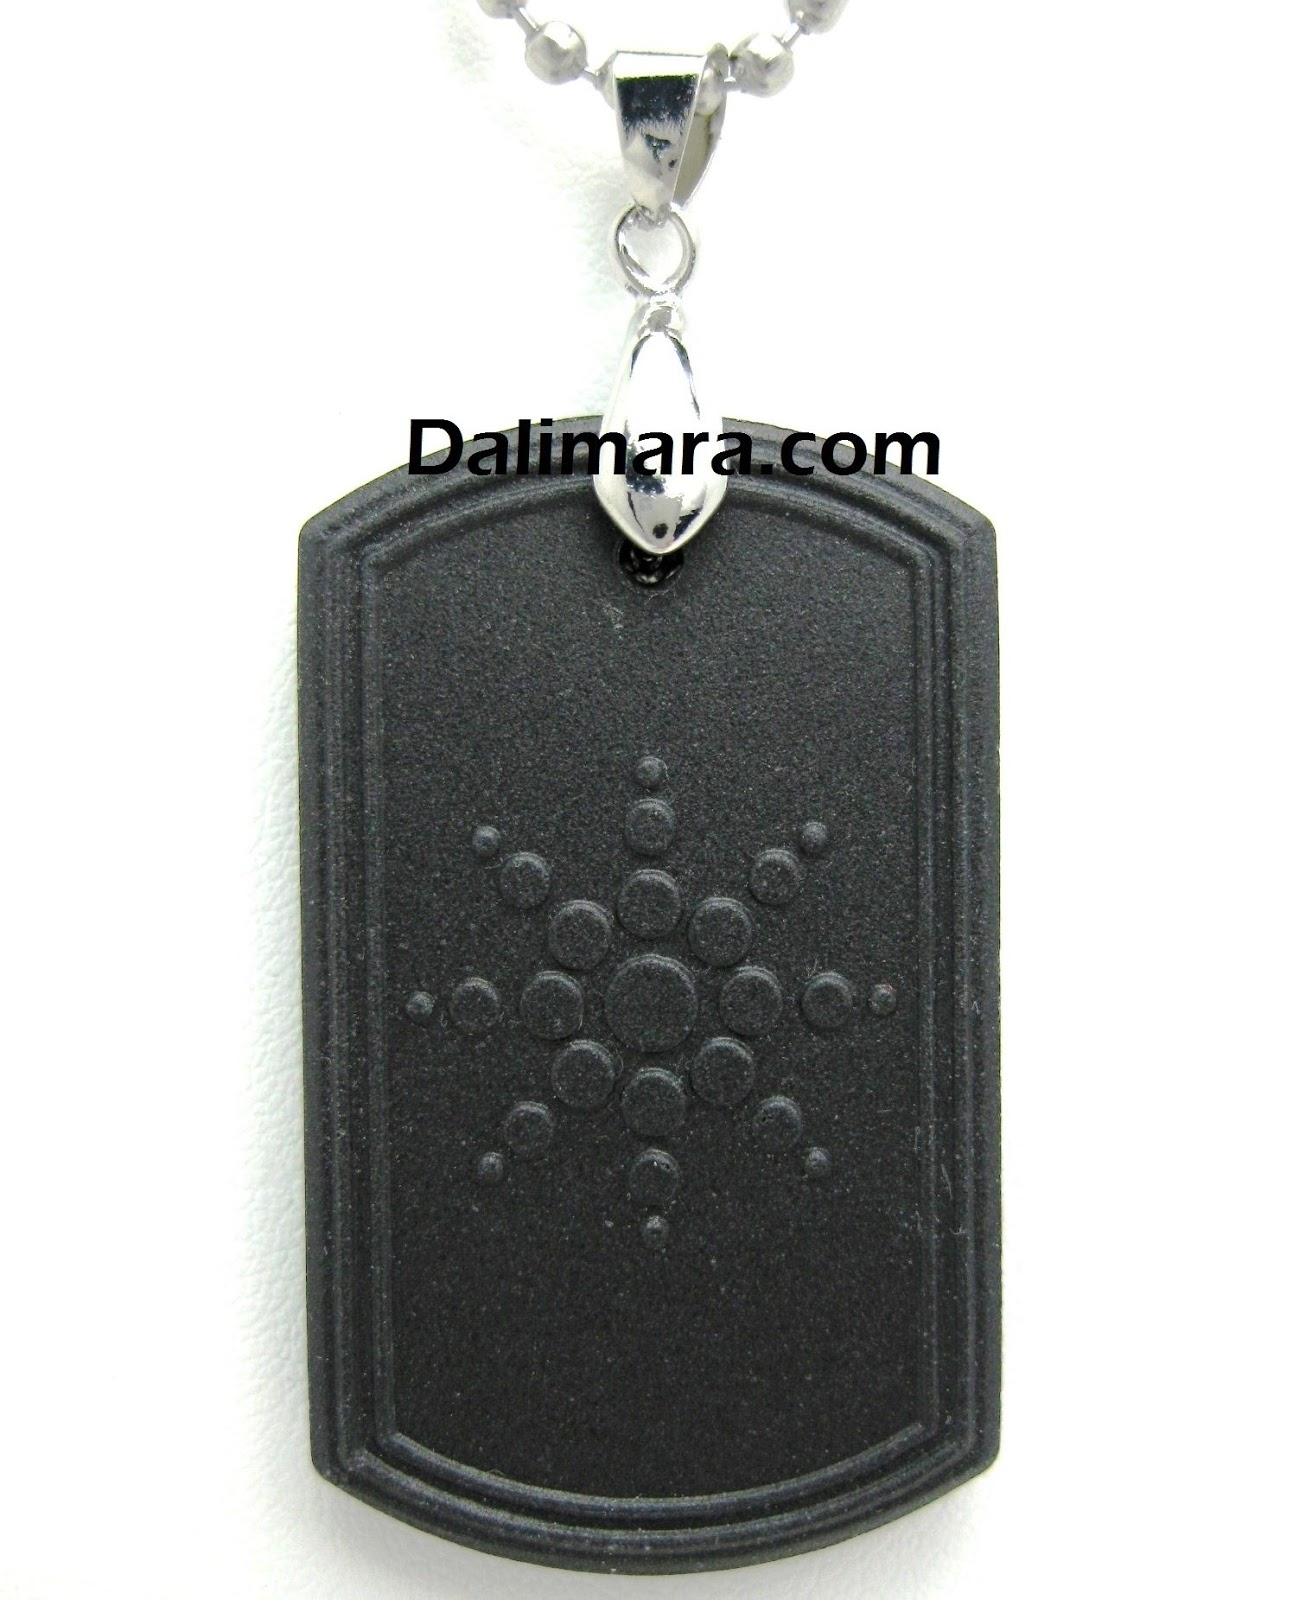 Qp8 quantum pendant dog tag w fir germanium 1995 dalimara qp8 quantum pendant dog tag w fir germanium 1995 dalimara energized jewelry aloadofball Gallery